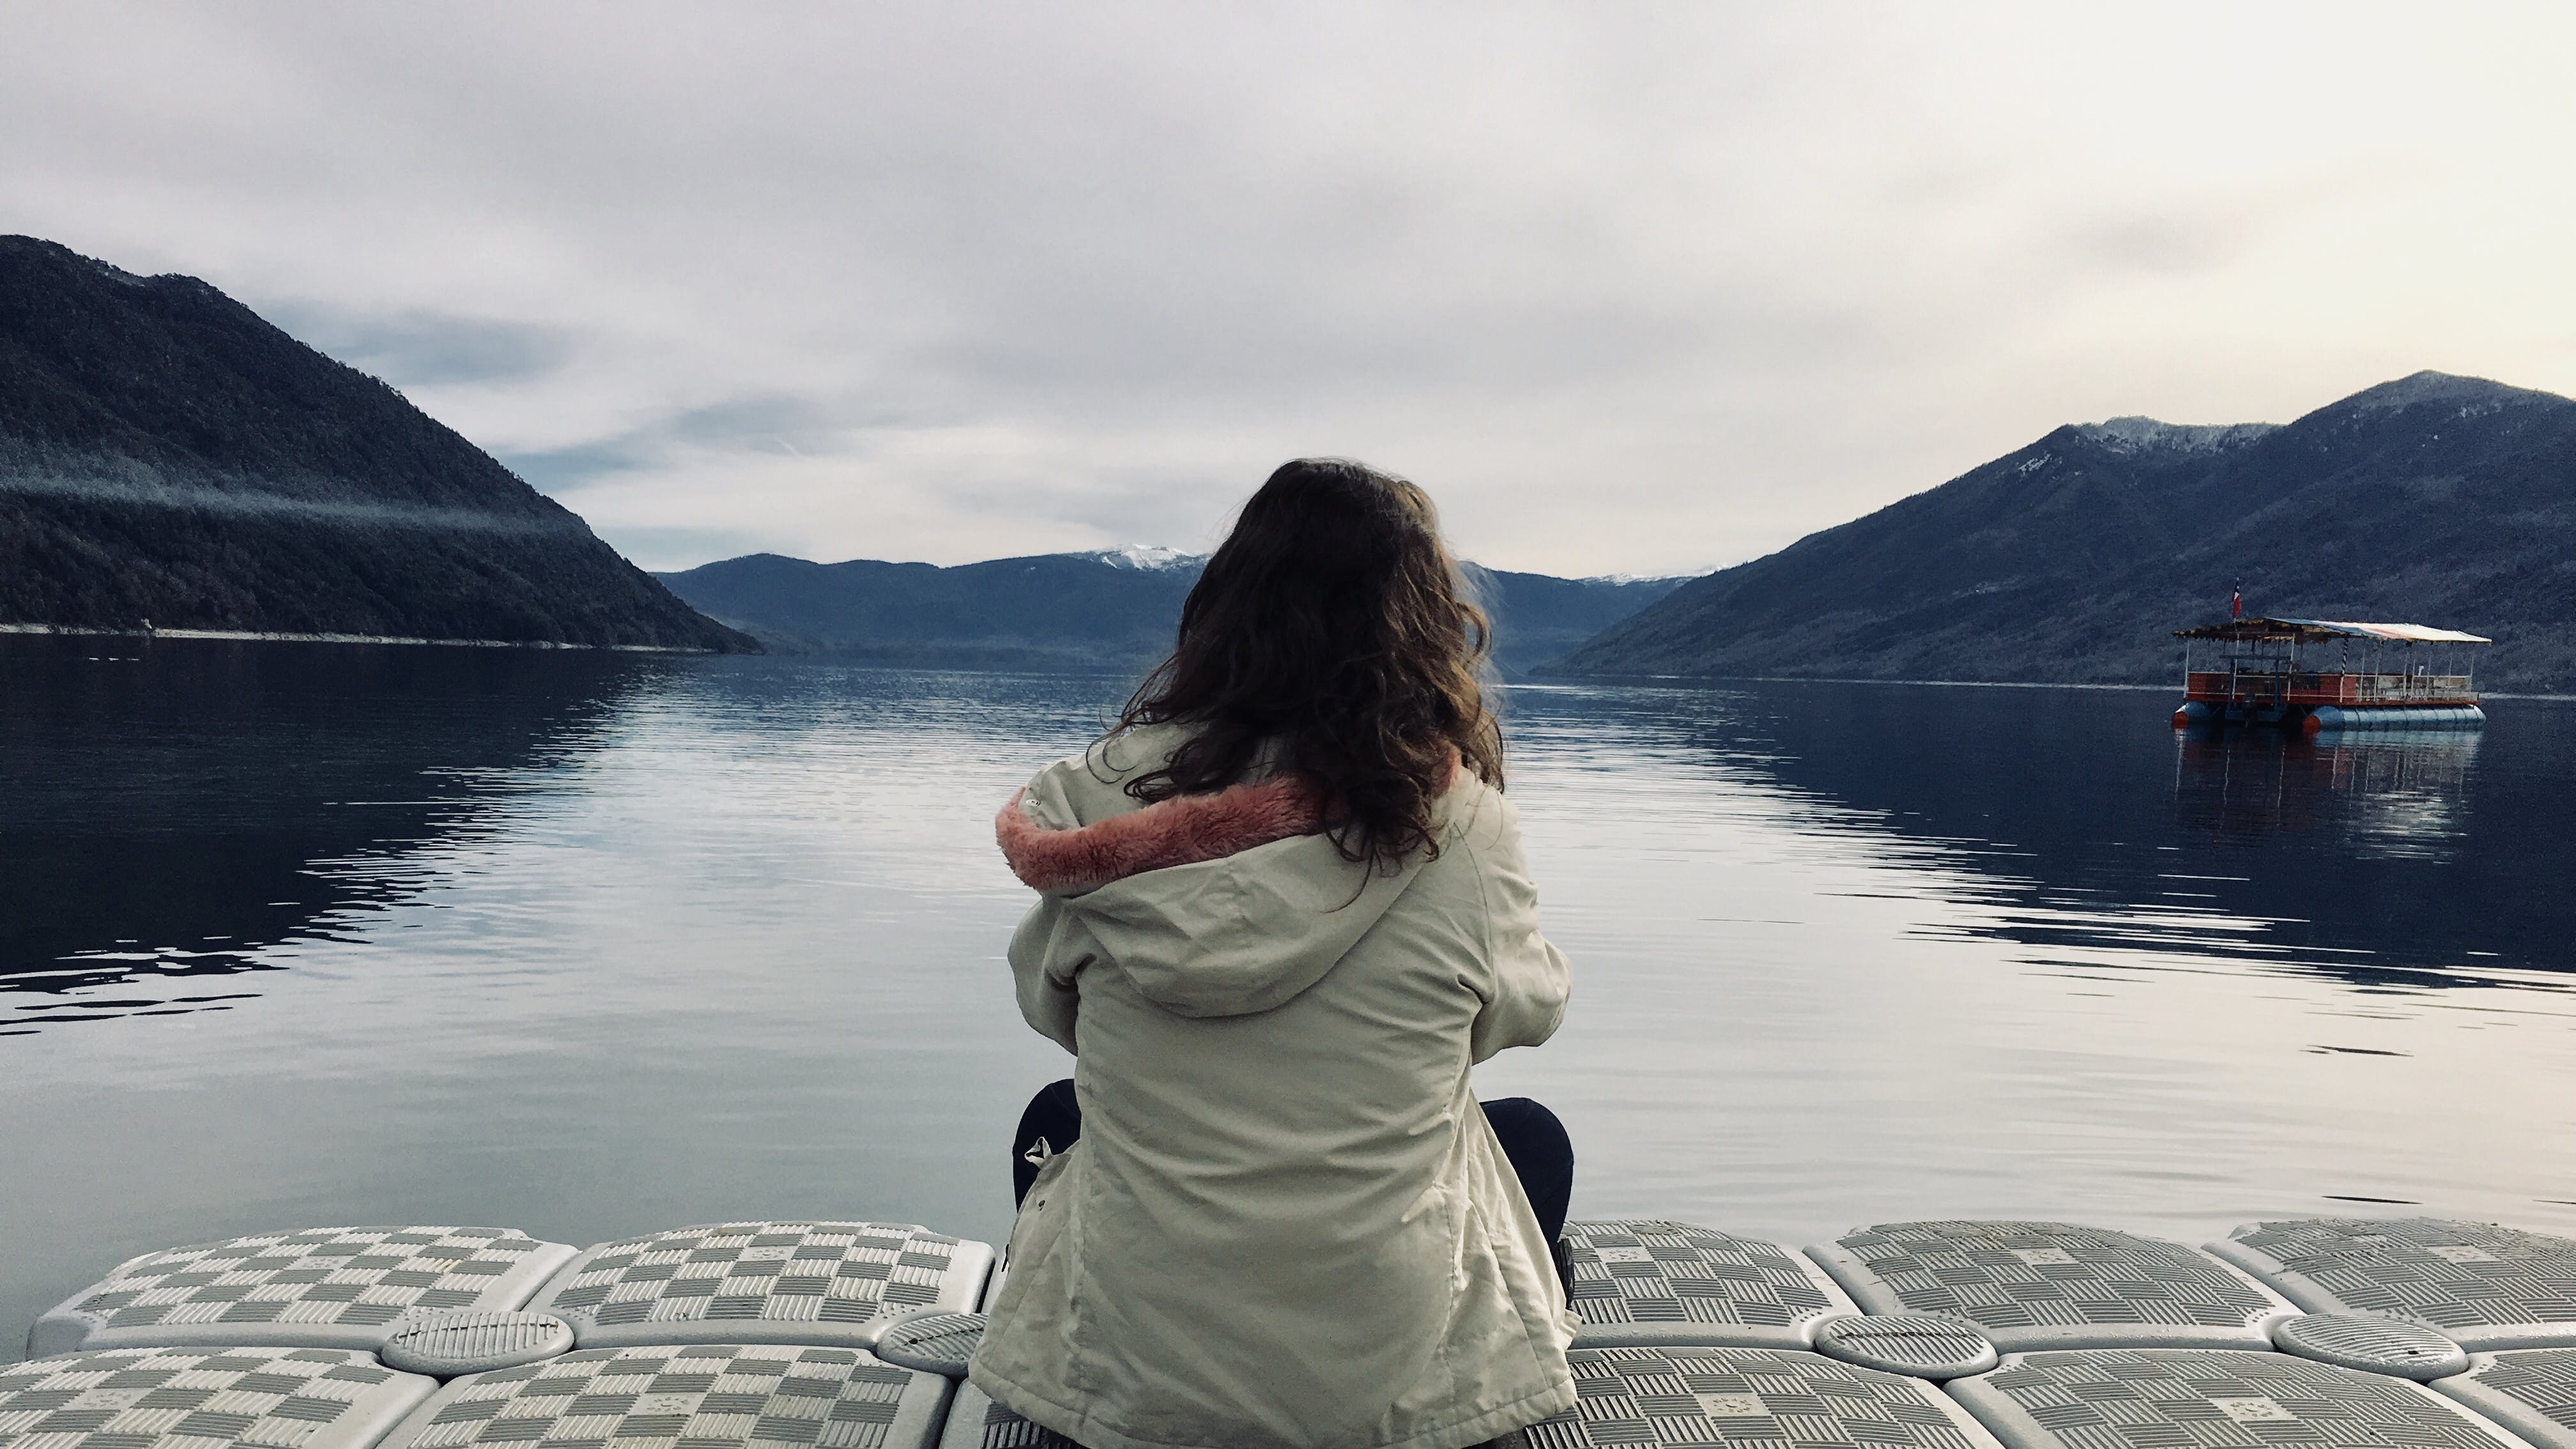 Woman Wearing Gray Jacket in Front of Body of Water